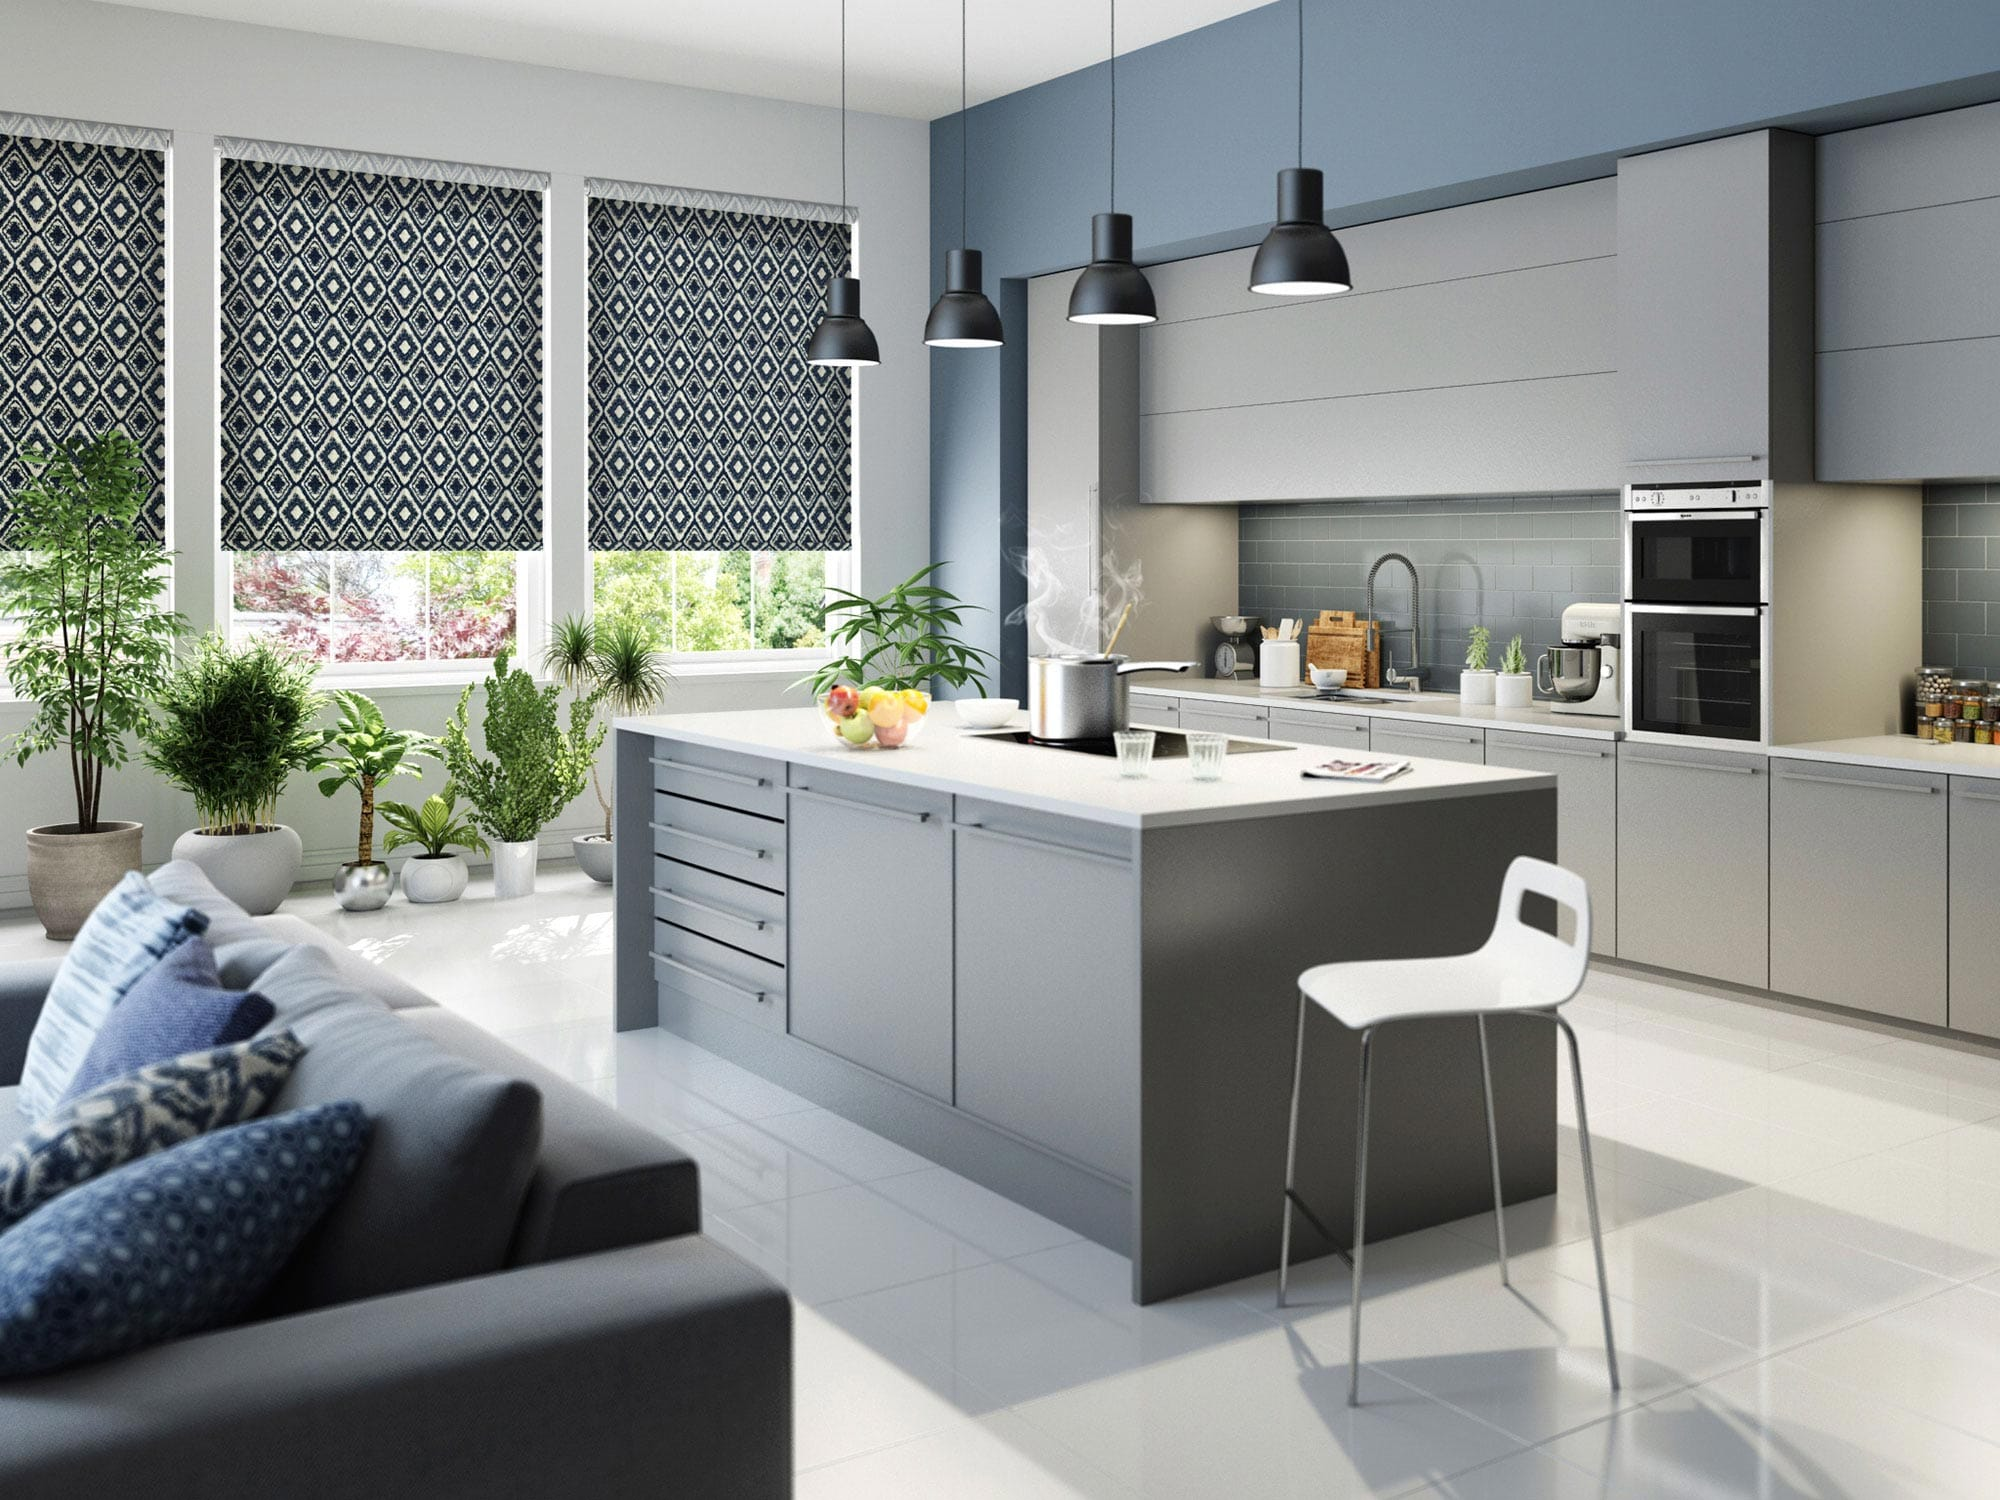 roman new nice milano cardiff blinds your personalise lime with kitchen